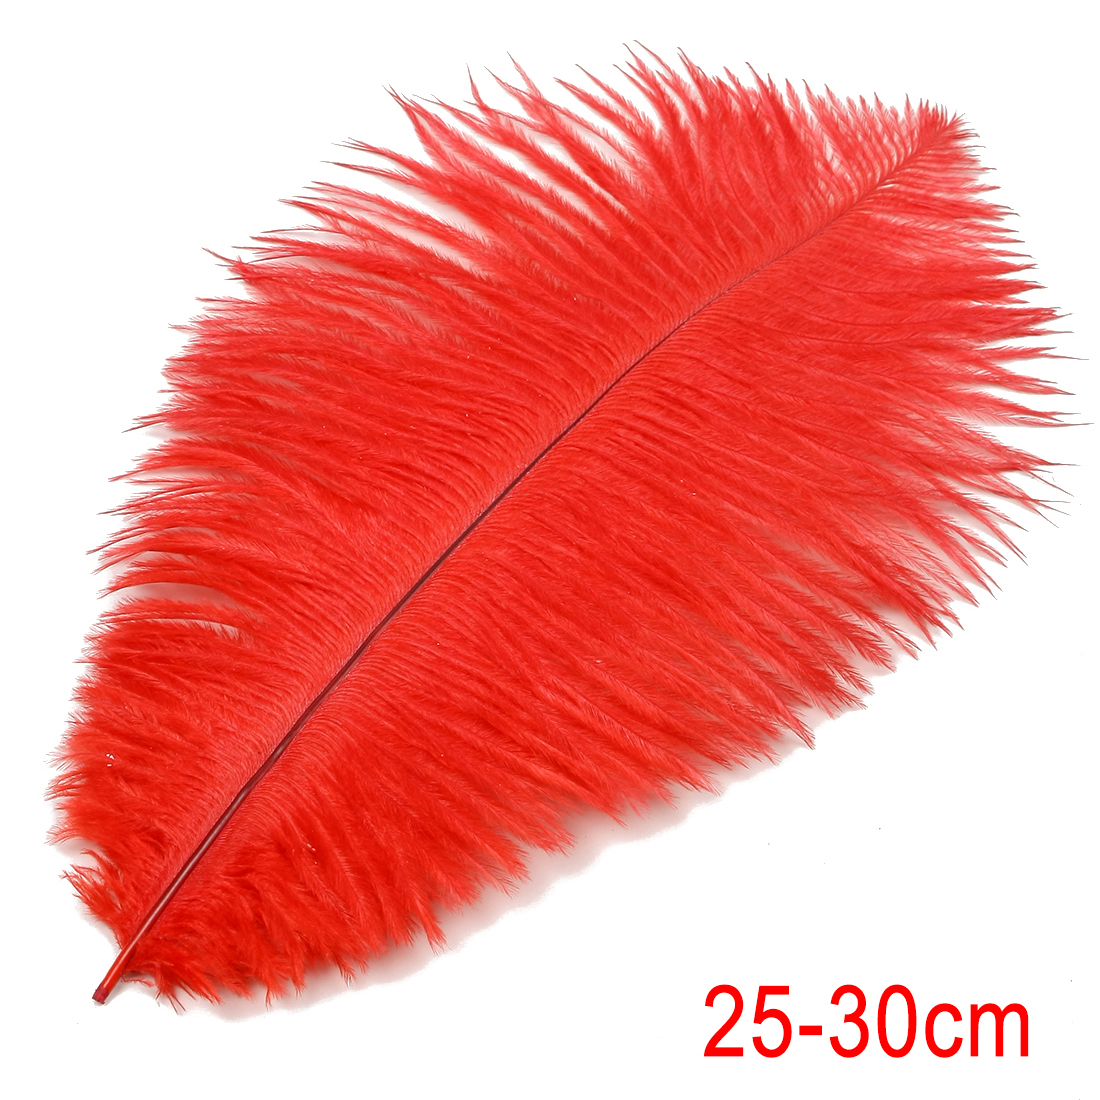 10-12 inch / 25-30cm Ostrich Feather for Wedding Party Decoration Red